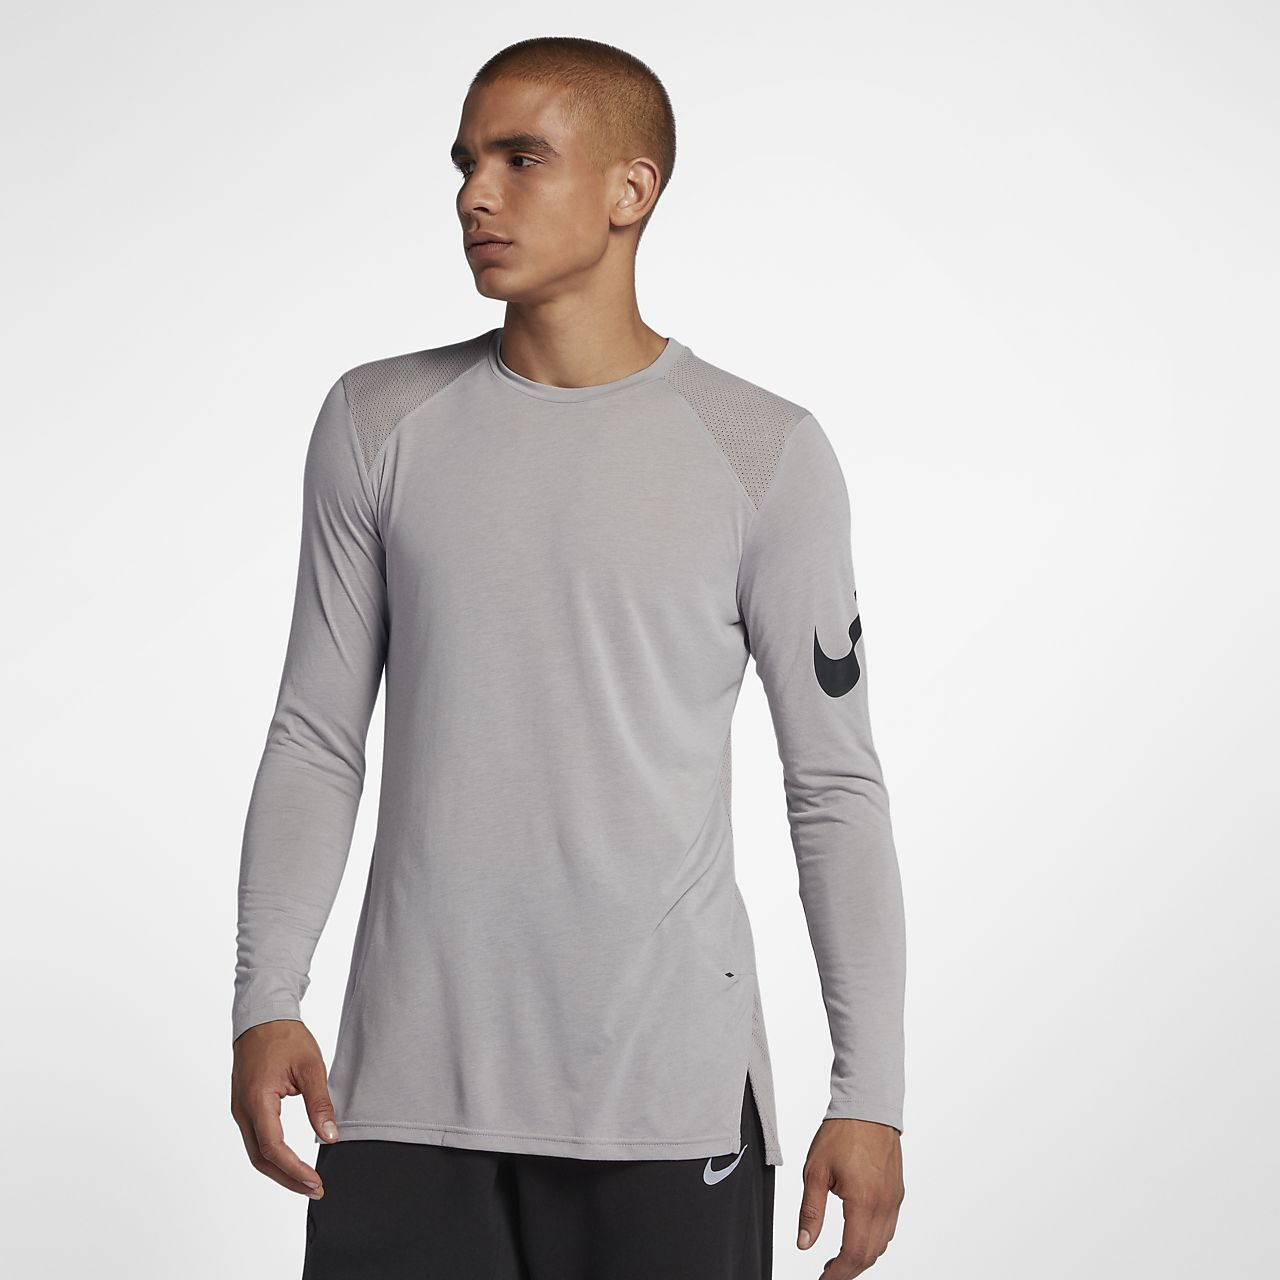 Nike Elite Men's Long Sleeve Basketball Top Black/White